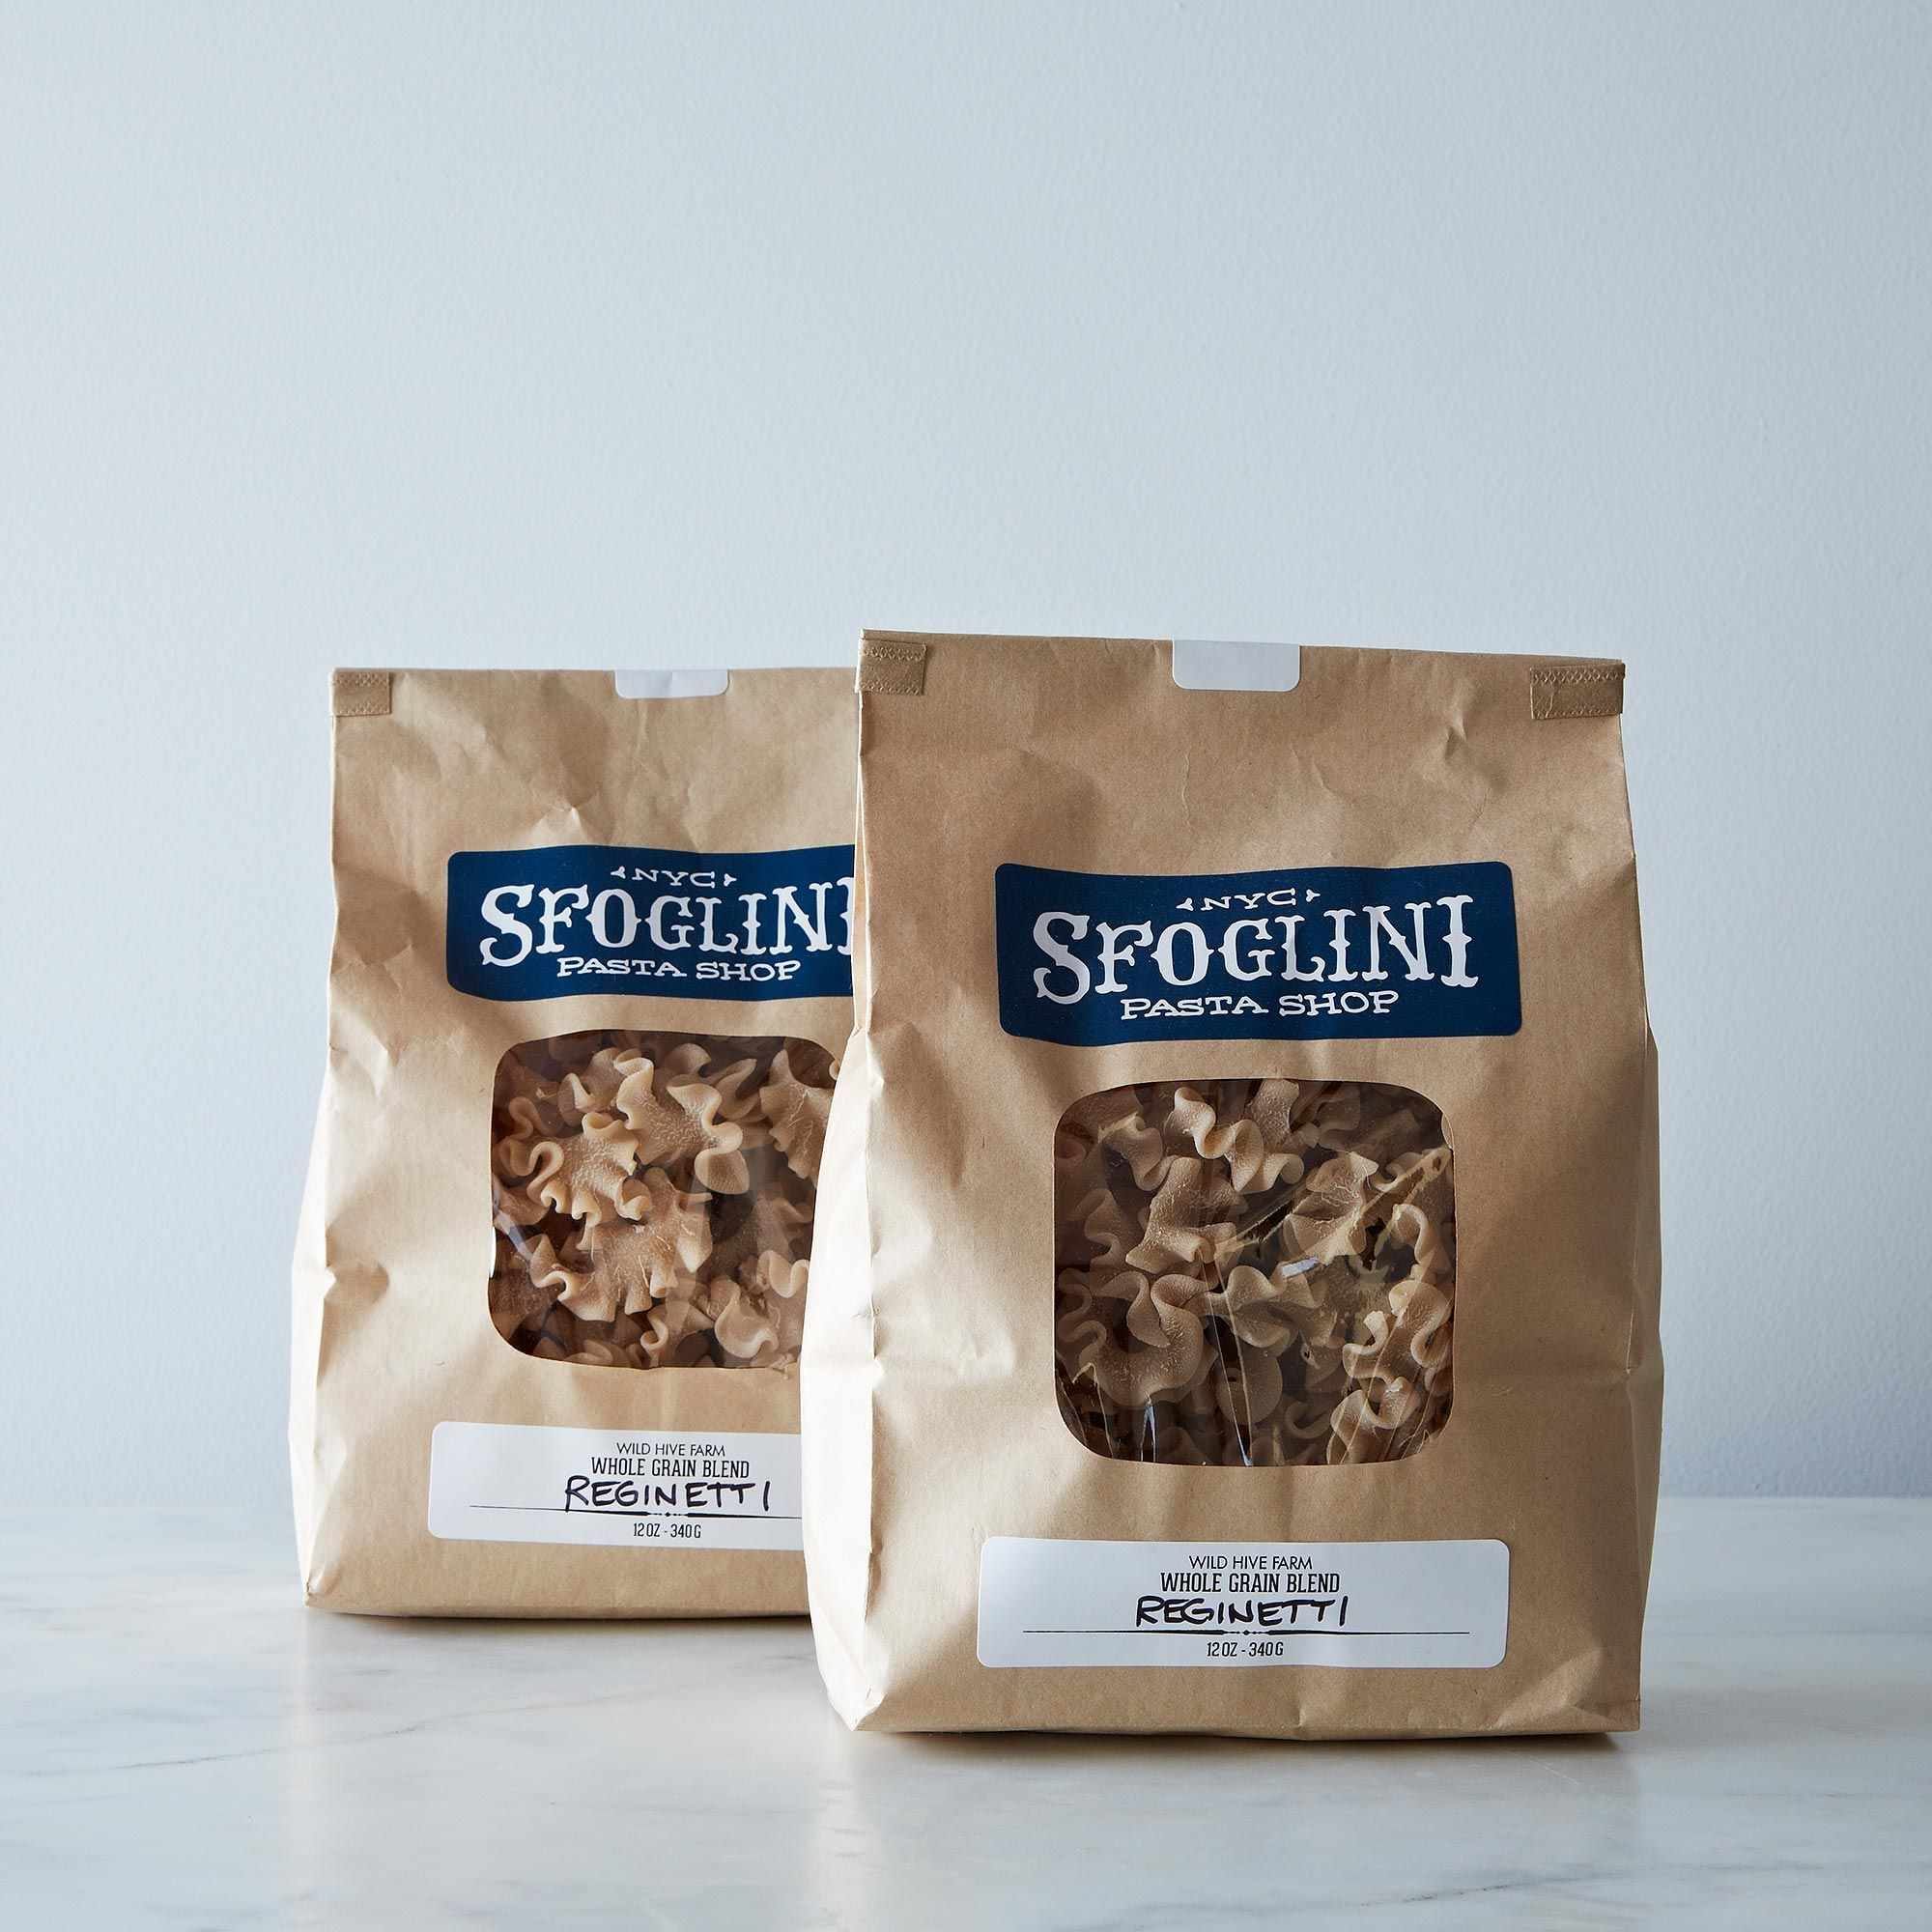 2ec1ba64-a0f5-11e5-a190-0ef7535729df--2013-0723_sfoglini_organic-whole-grain-blend-reginetti_2bags-002